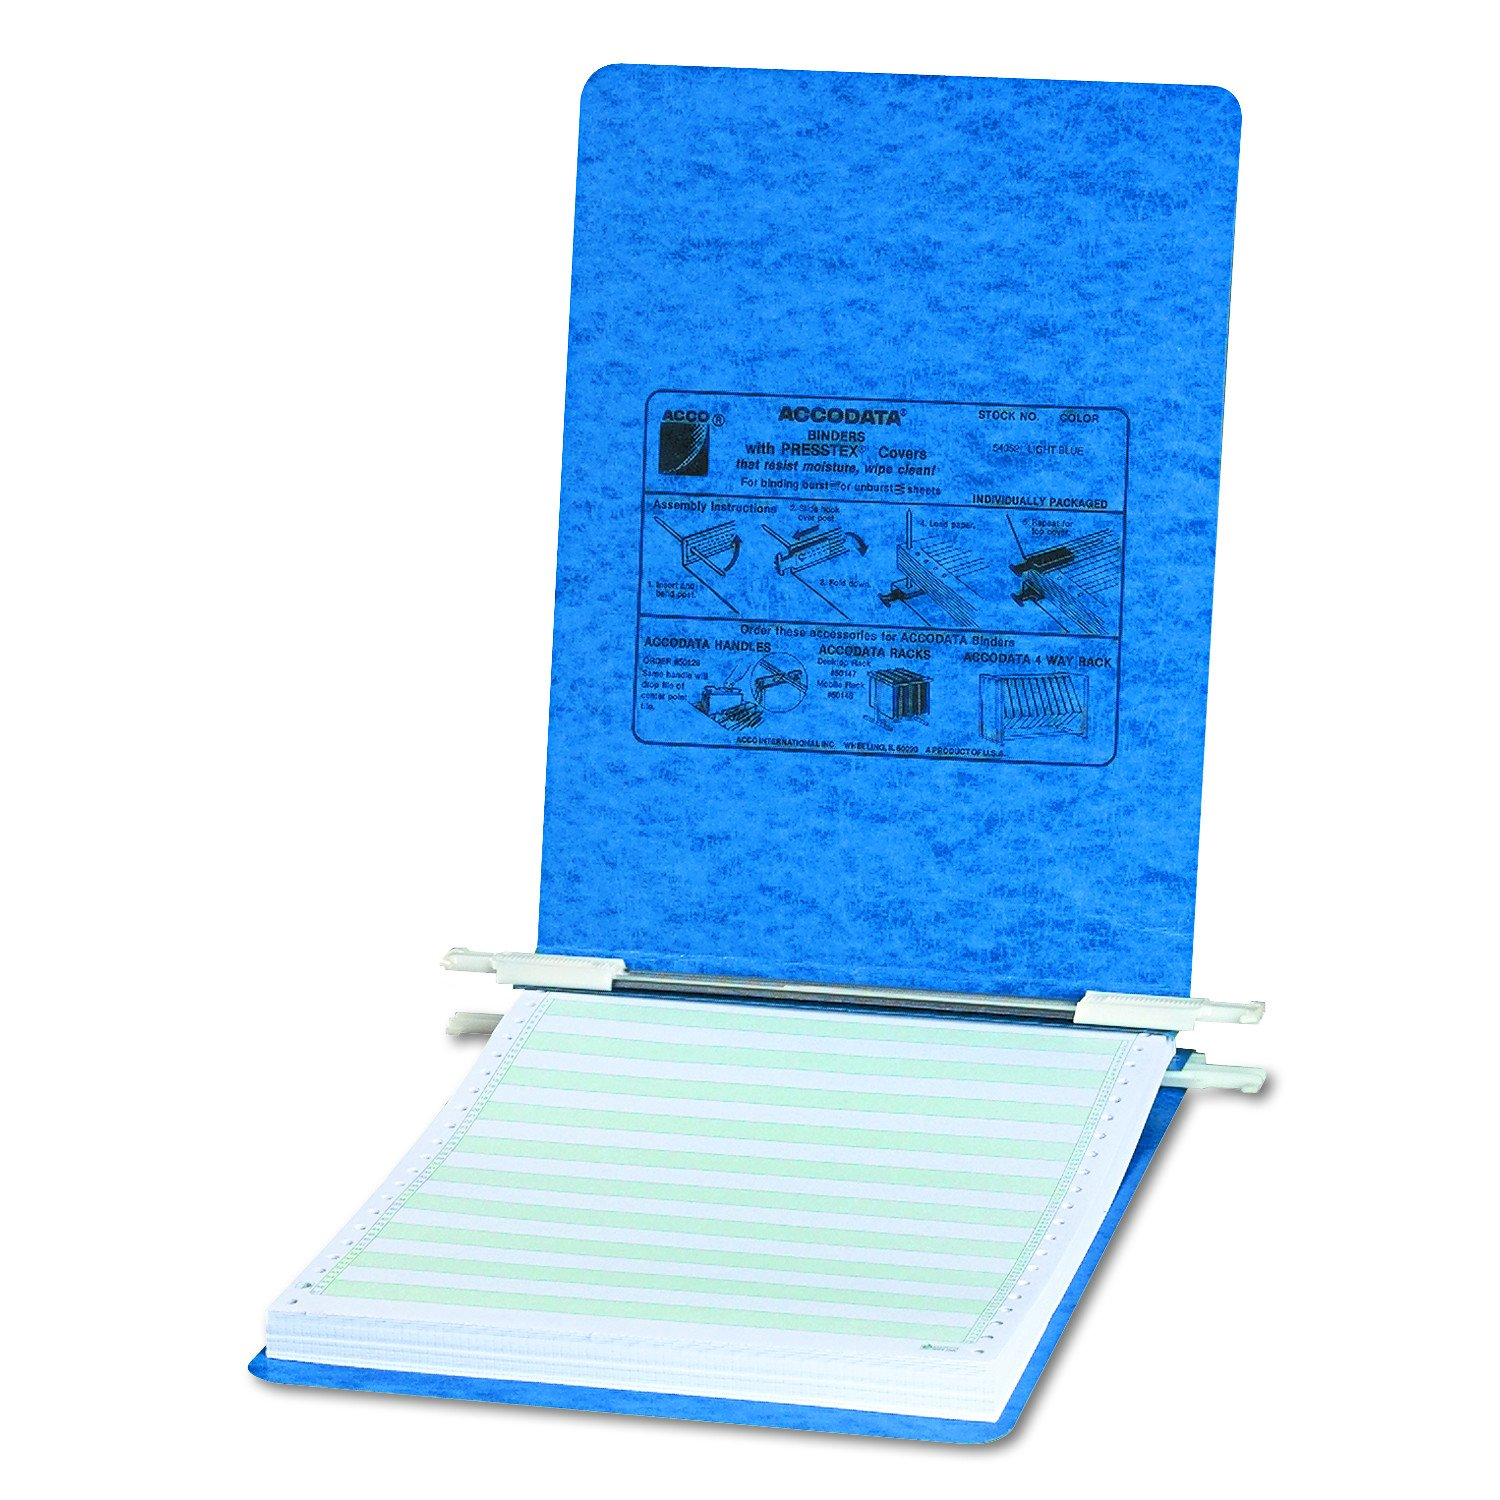 Acco Data Processing Binder, 6-Inch Cap, 8-1/2 X 11-Inch, Blue (Acc54052)